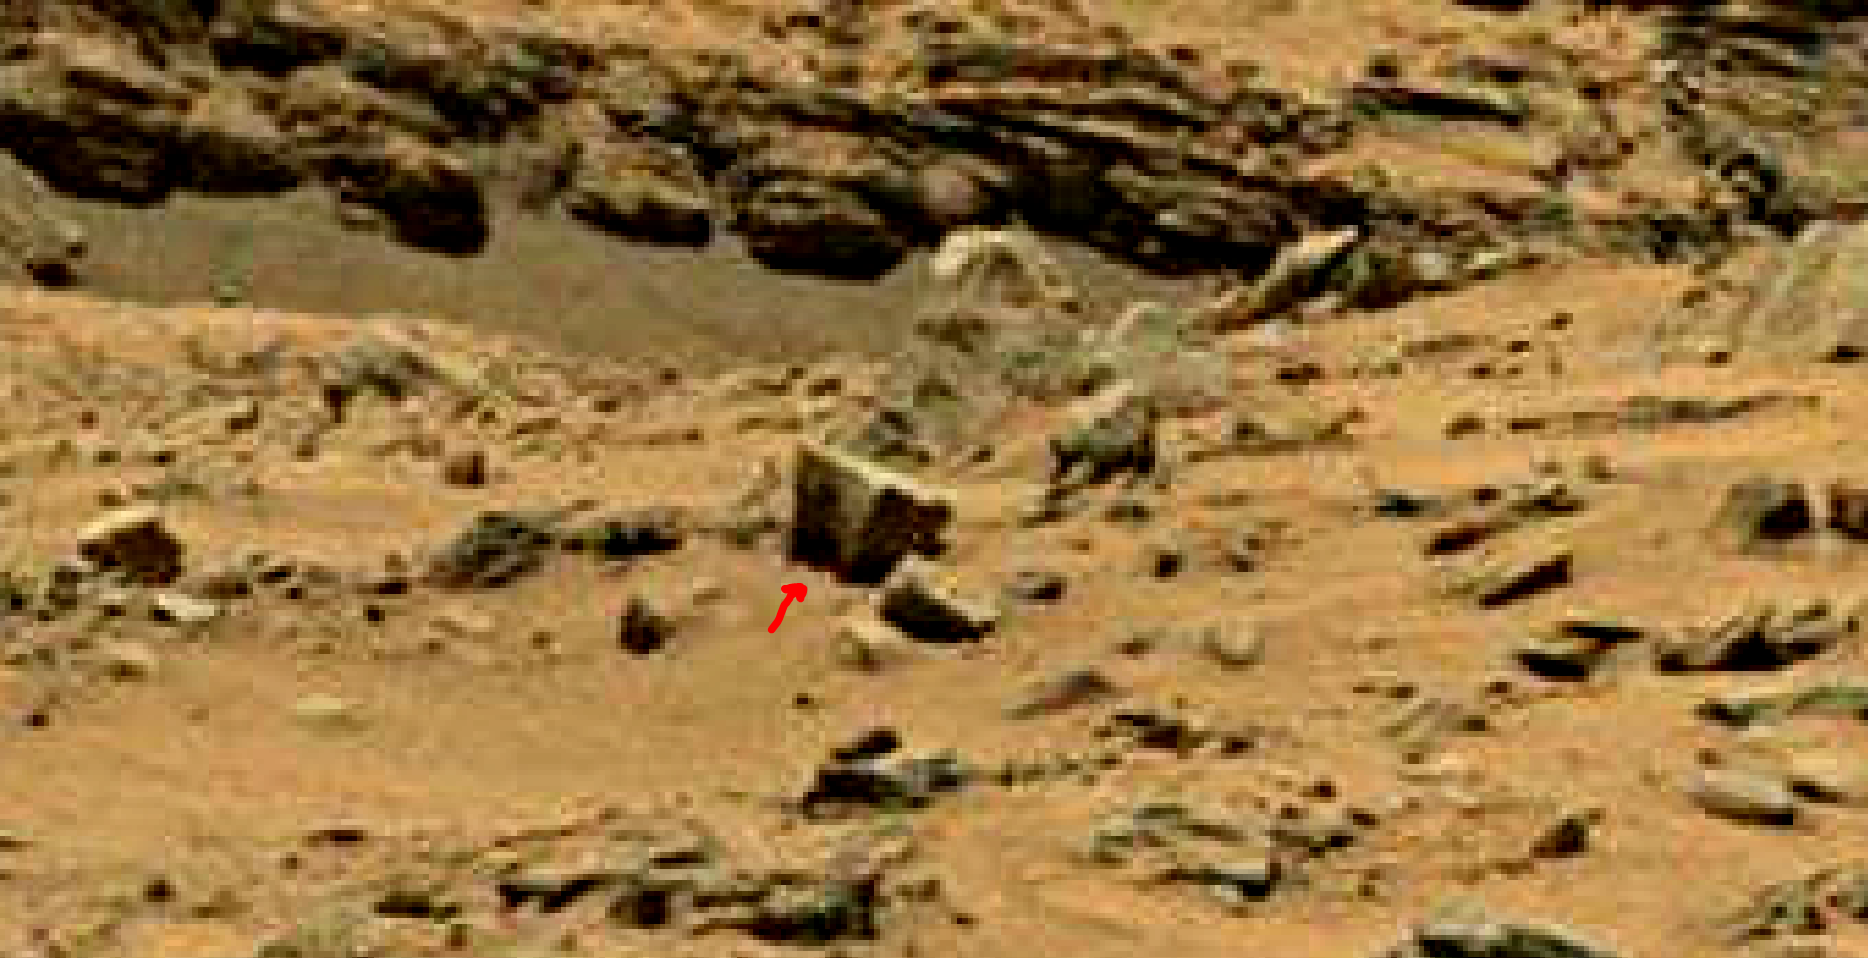 mars sol 1399 anomaly artifacts 13 was life on mars